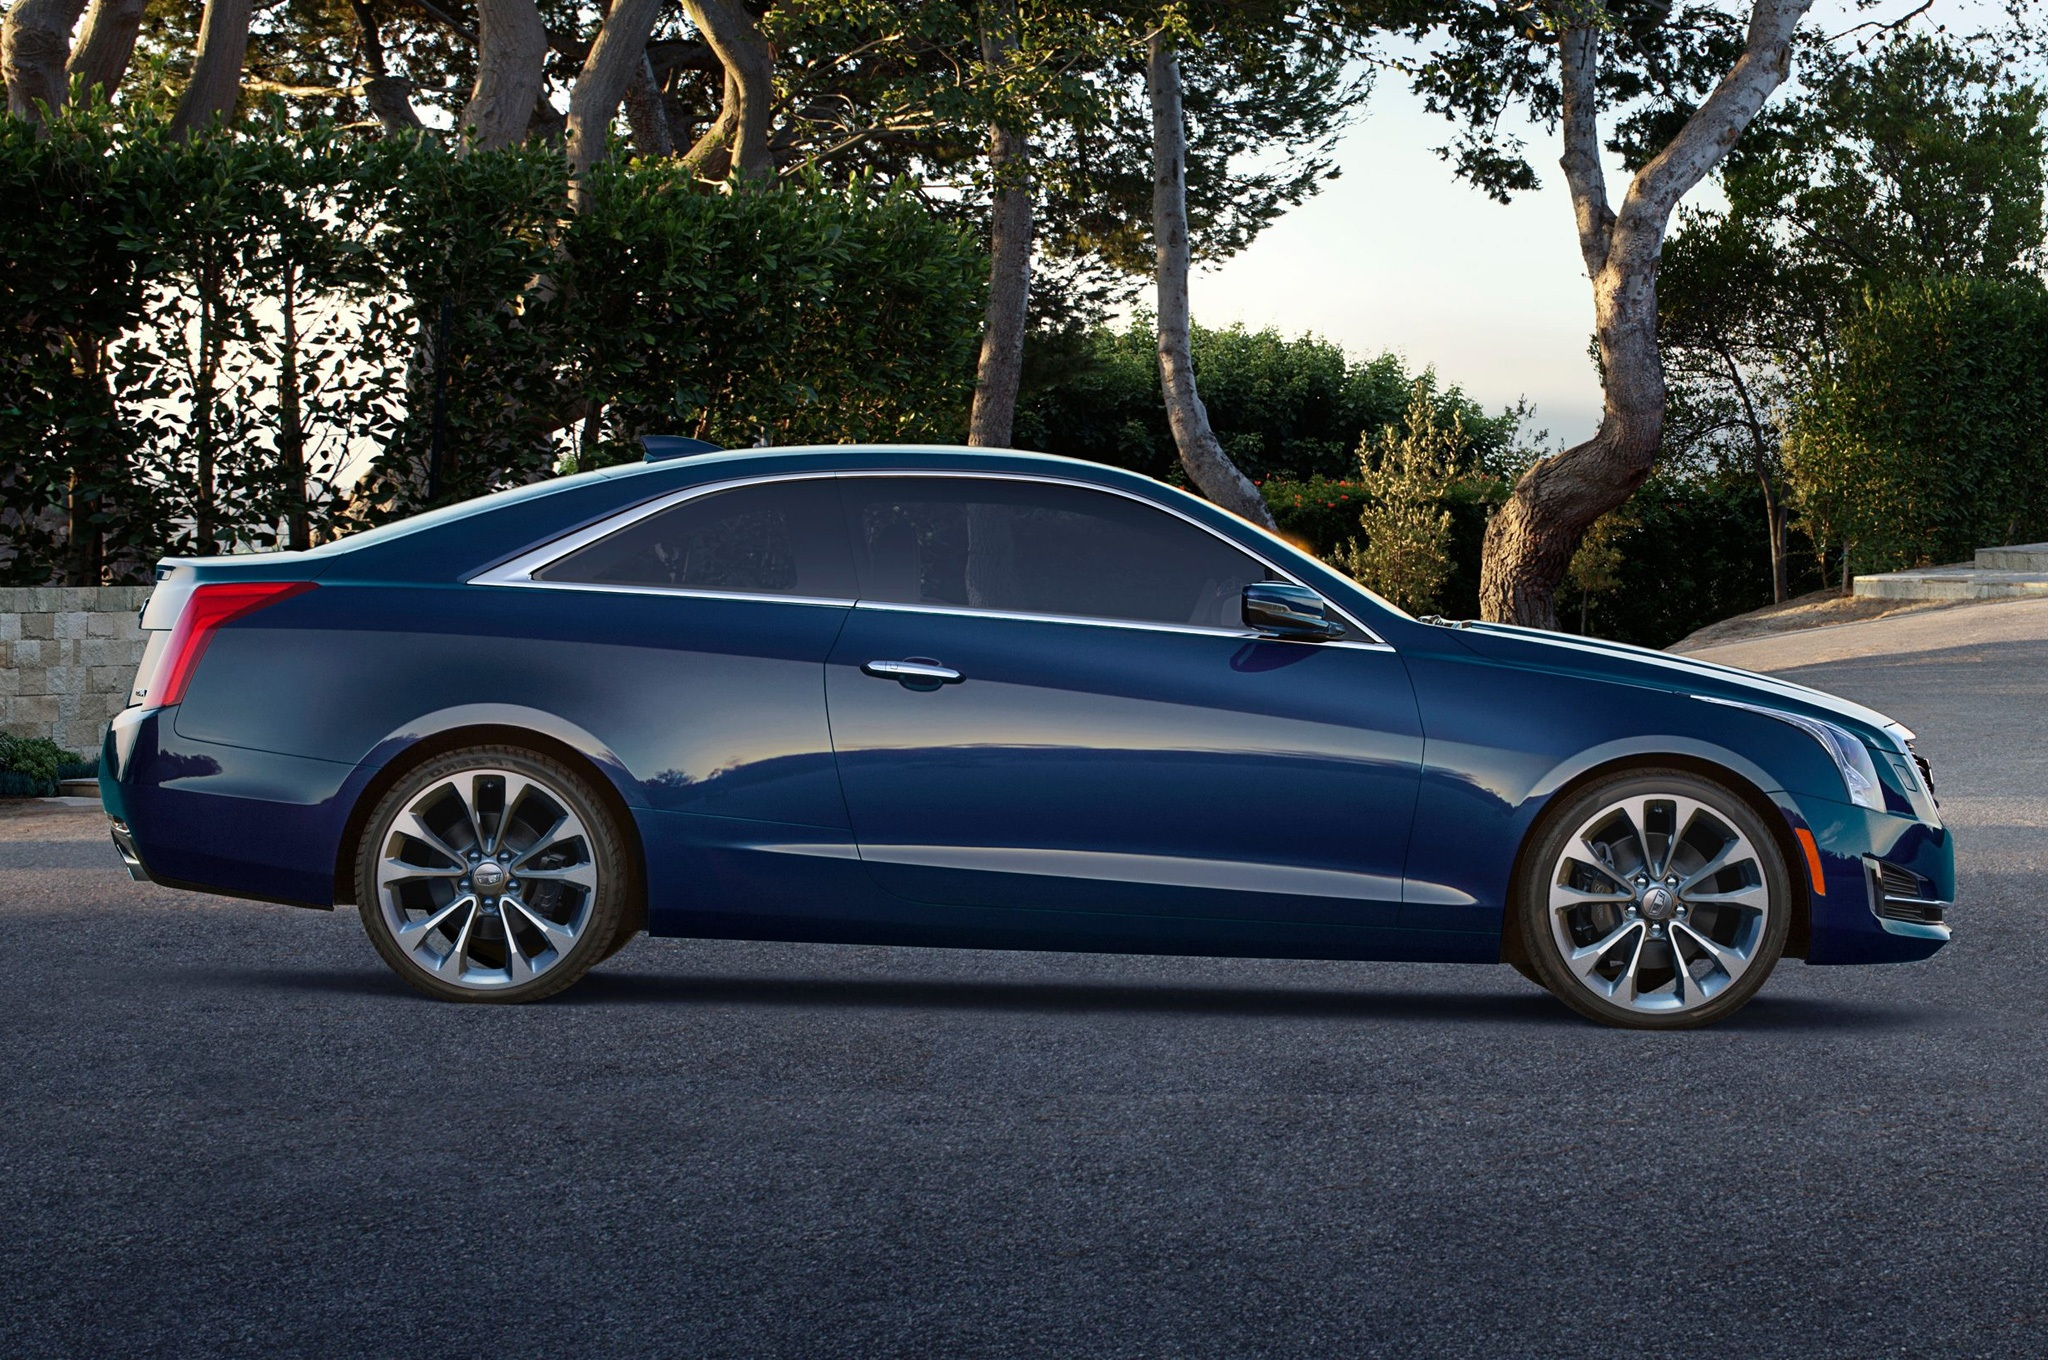 2015 Cadillac Ats Coupe Side Design (View 14 of 21)